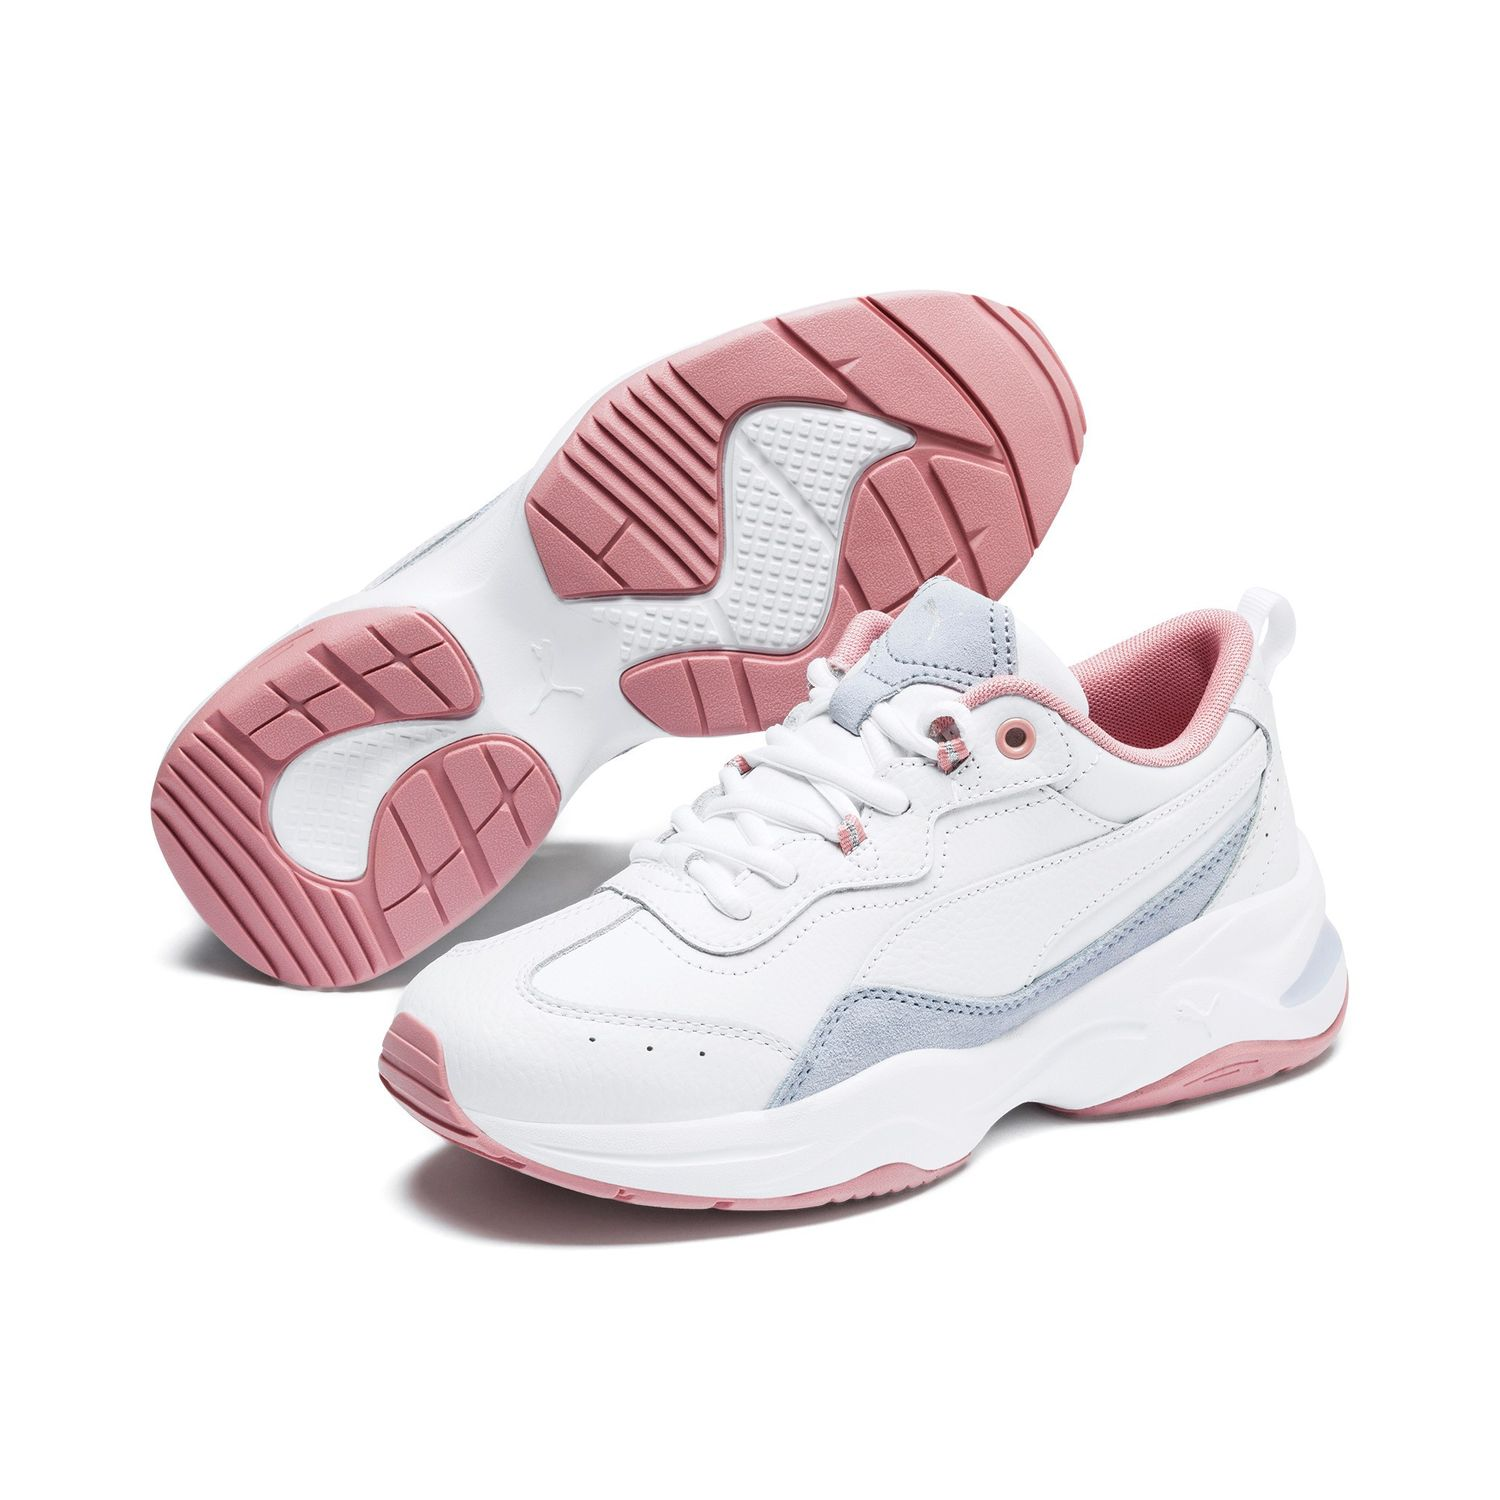 Details about Puma Cilia Lux Fitness Shoes Jogging Shoes Trainers 370282 White Rose